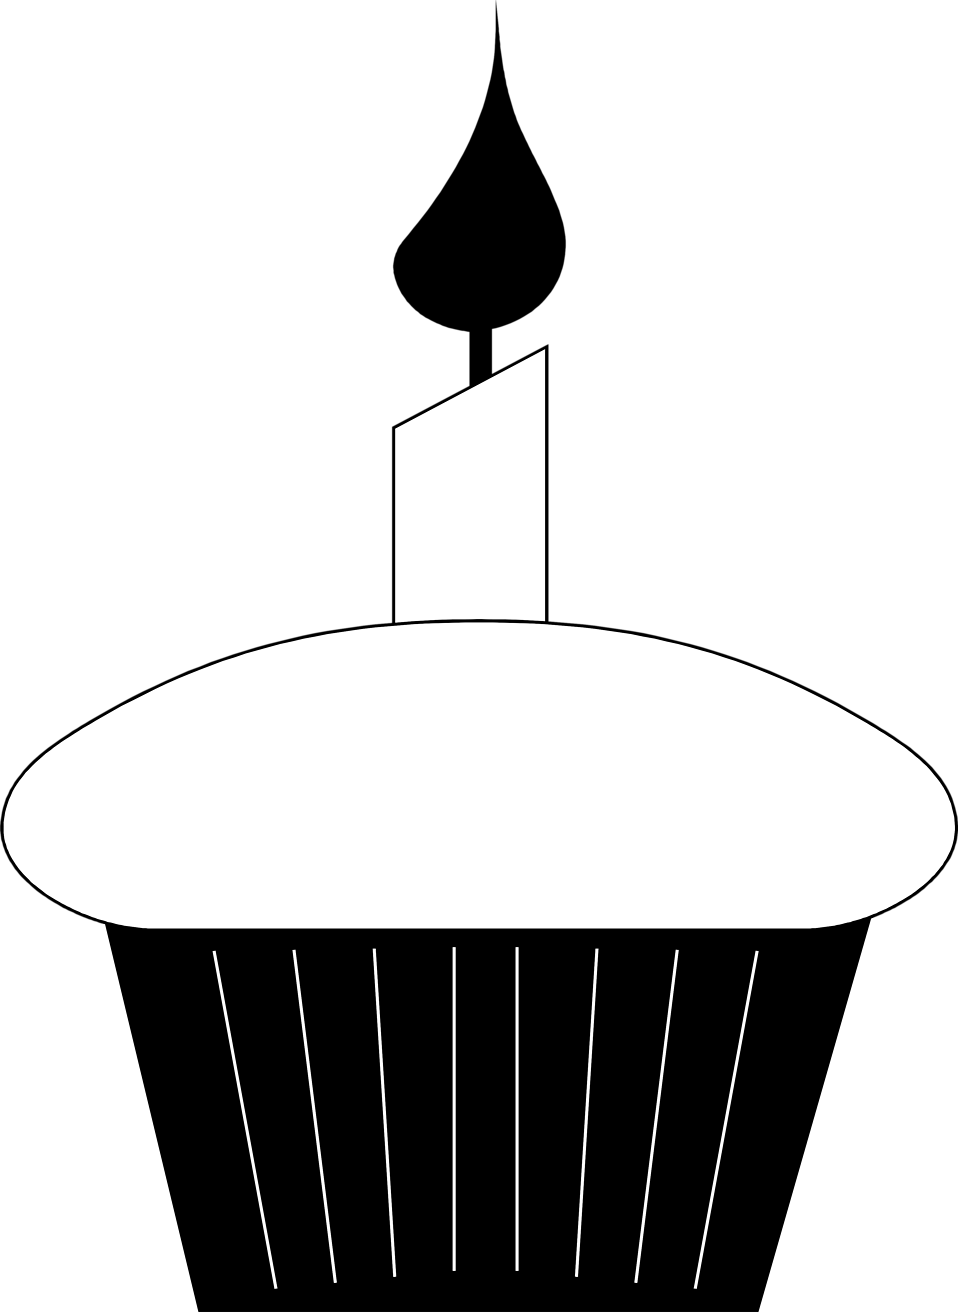 958x1315 Cupcake Black And White Birthday Cupcake Clip Art Black And White